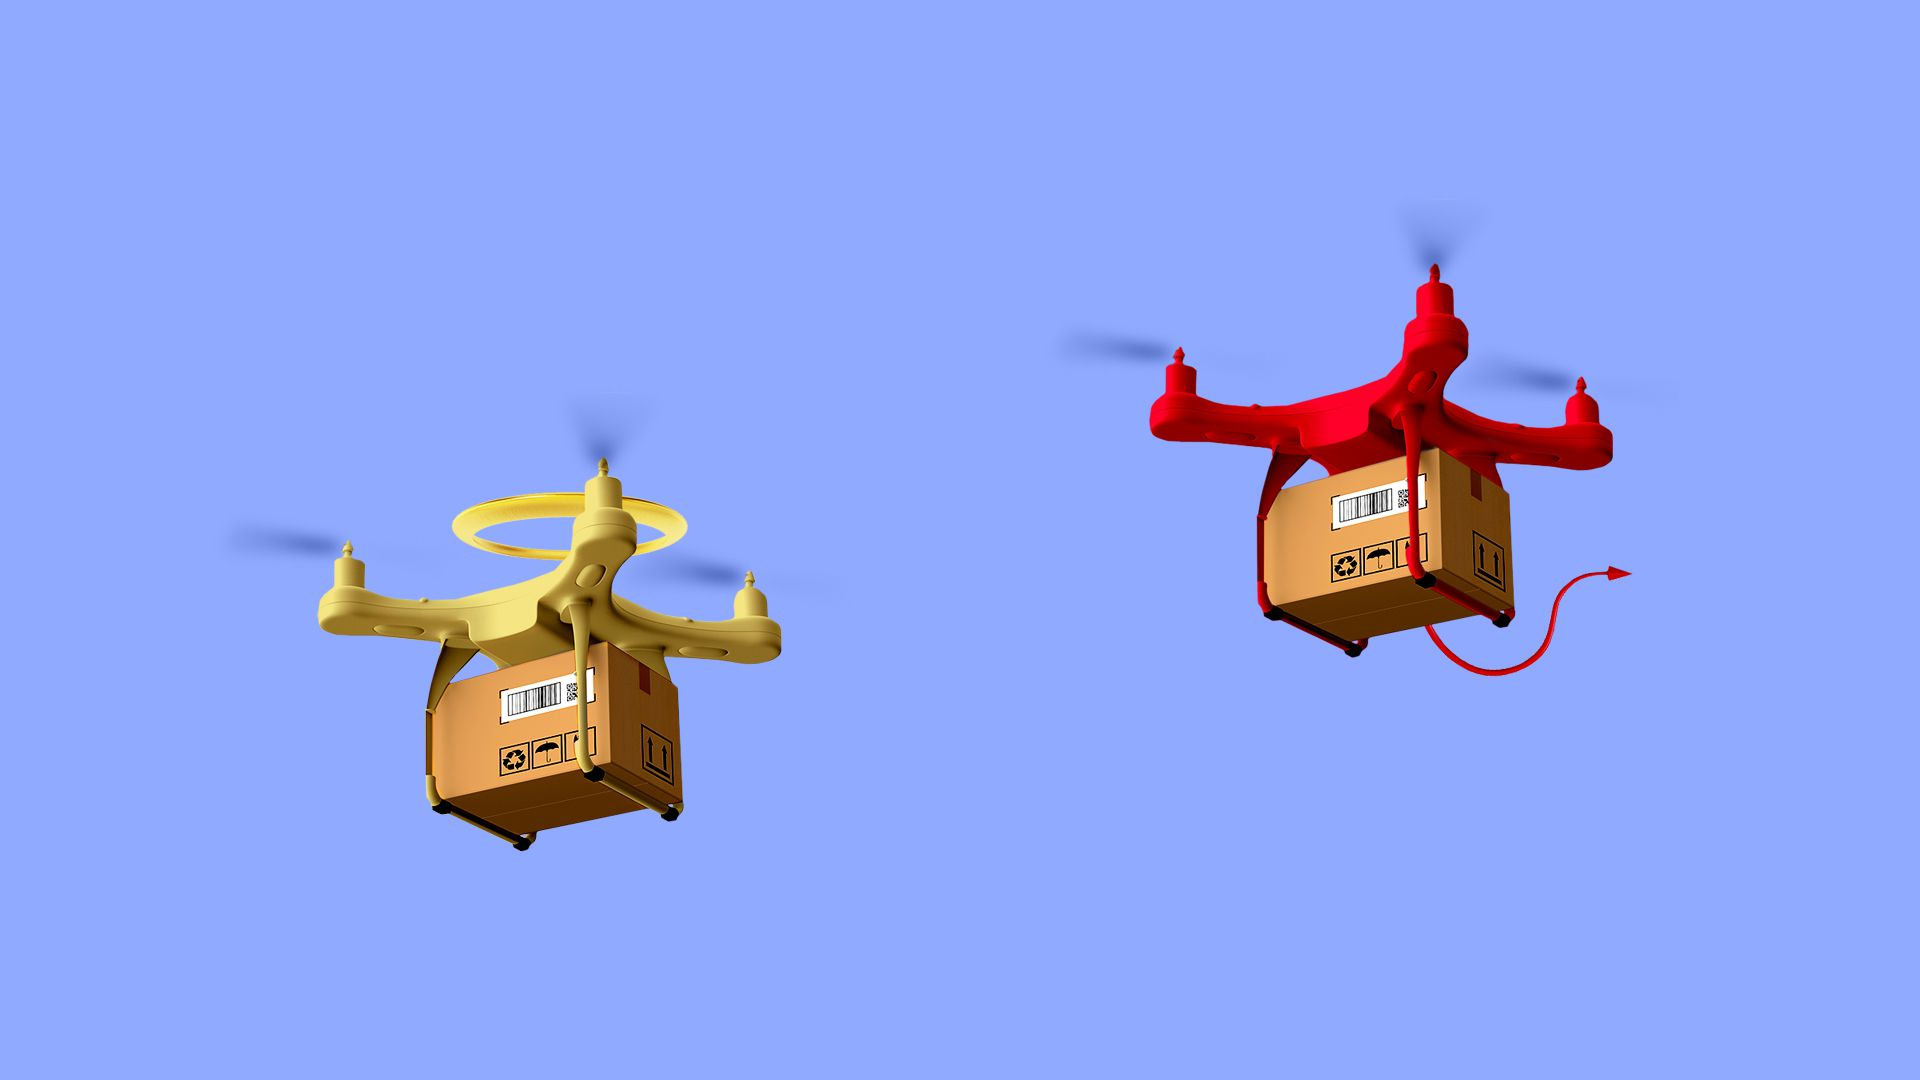 Illustration of angel and devil delivery drones